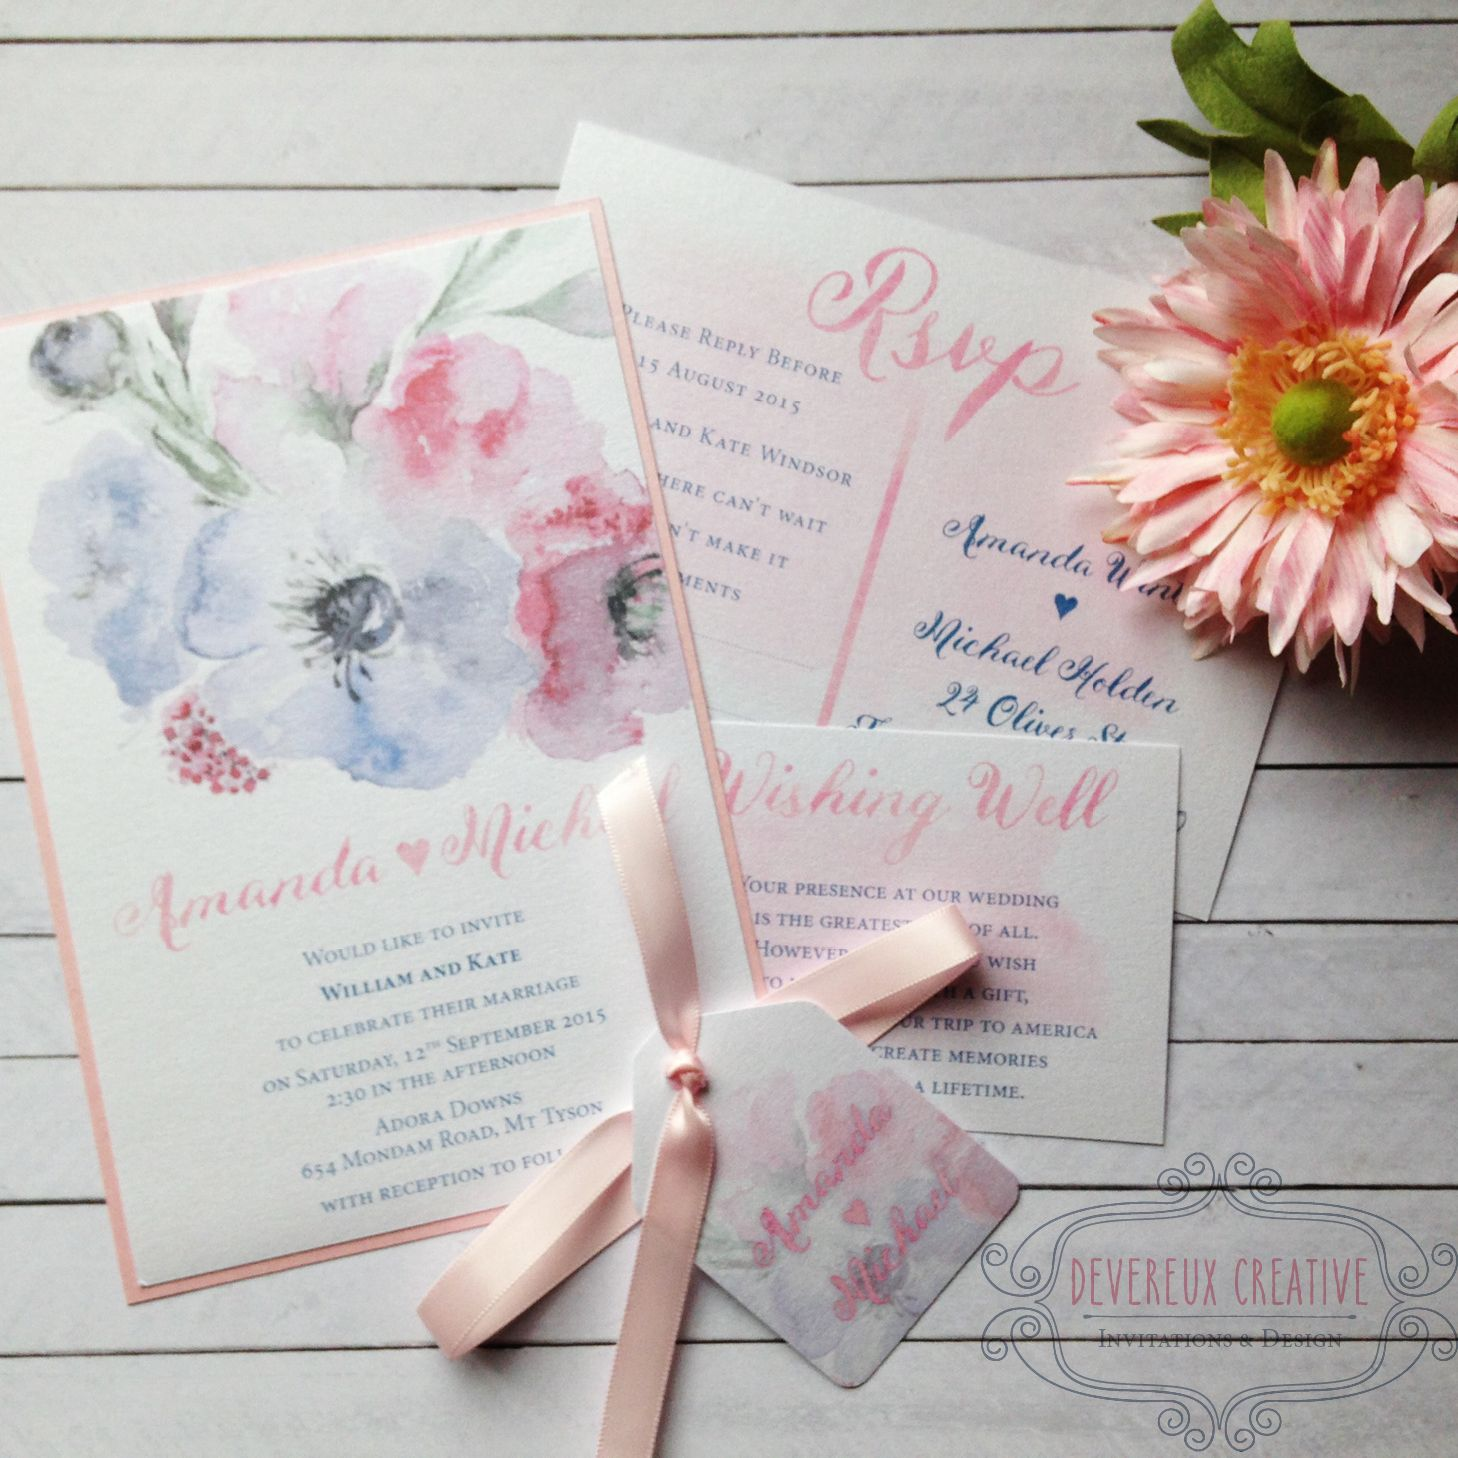 Handcrafted wedding invitation gallery for inspiration on